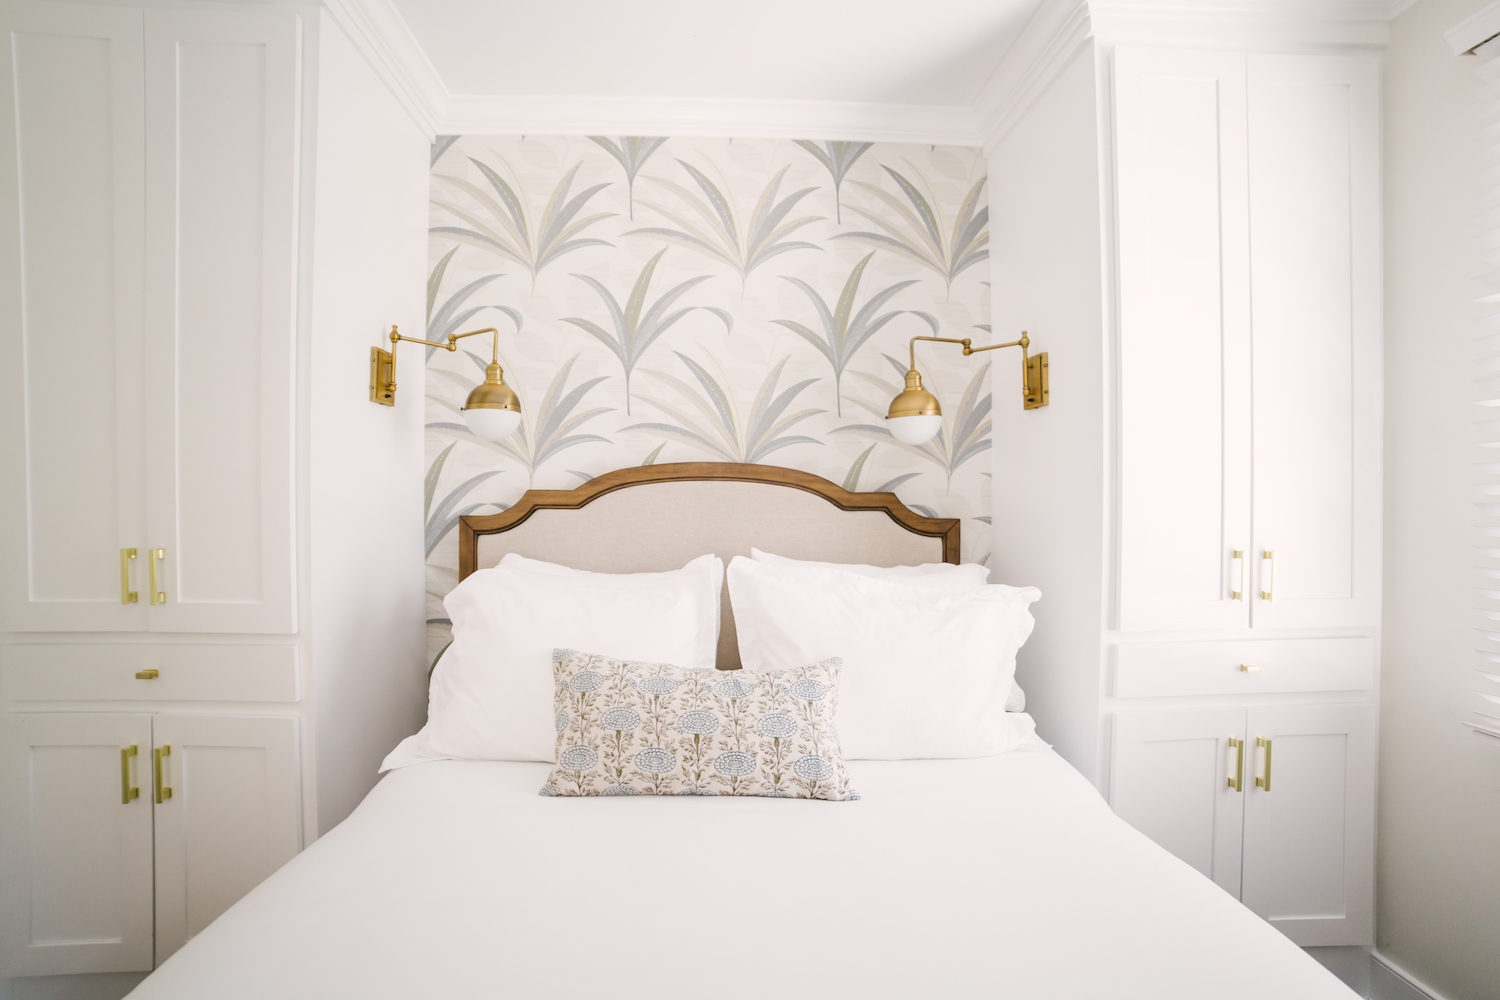 My Stay at Guesthouse Charleston bed